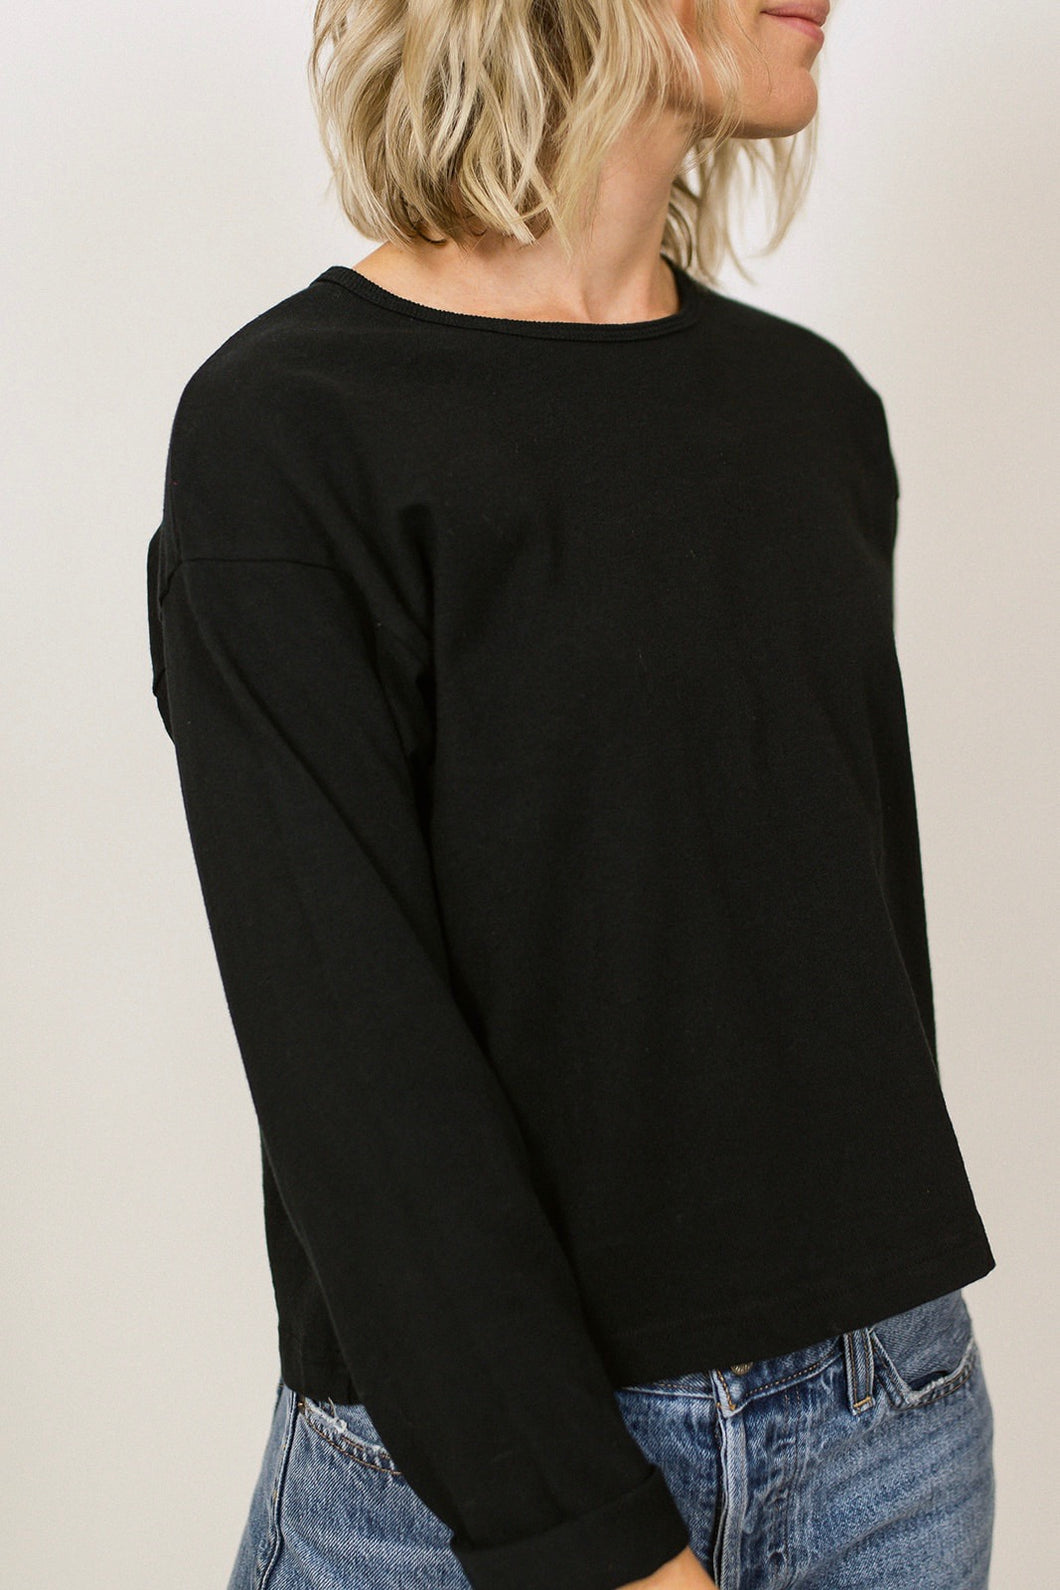 Cotton Crop Longsleeve - Black